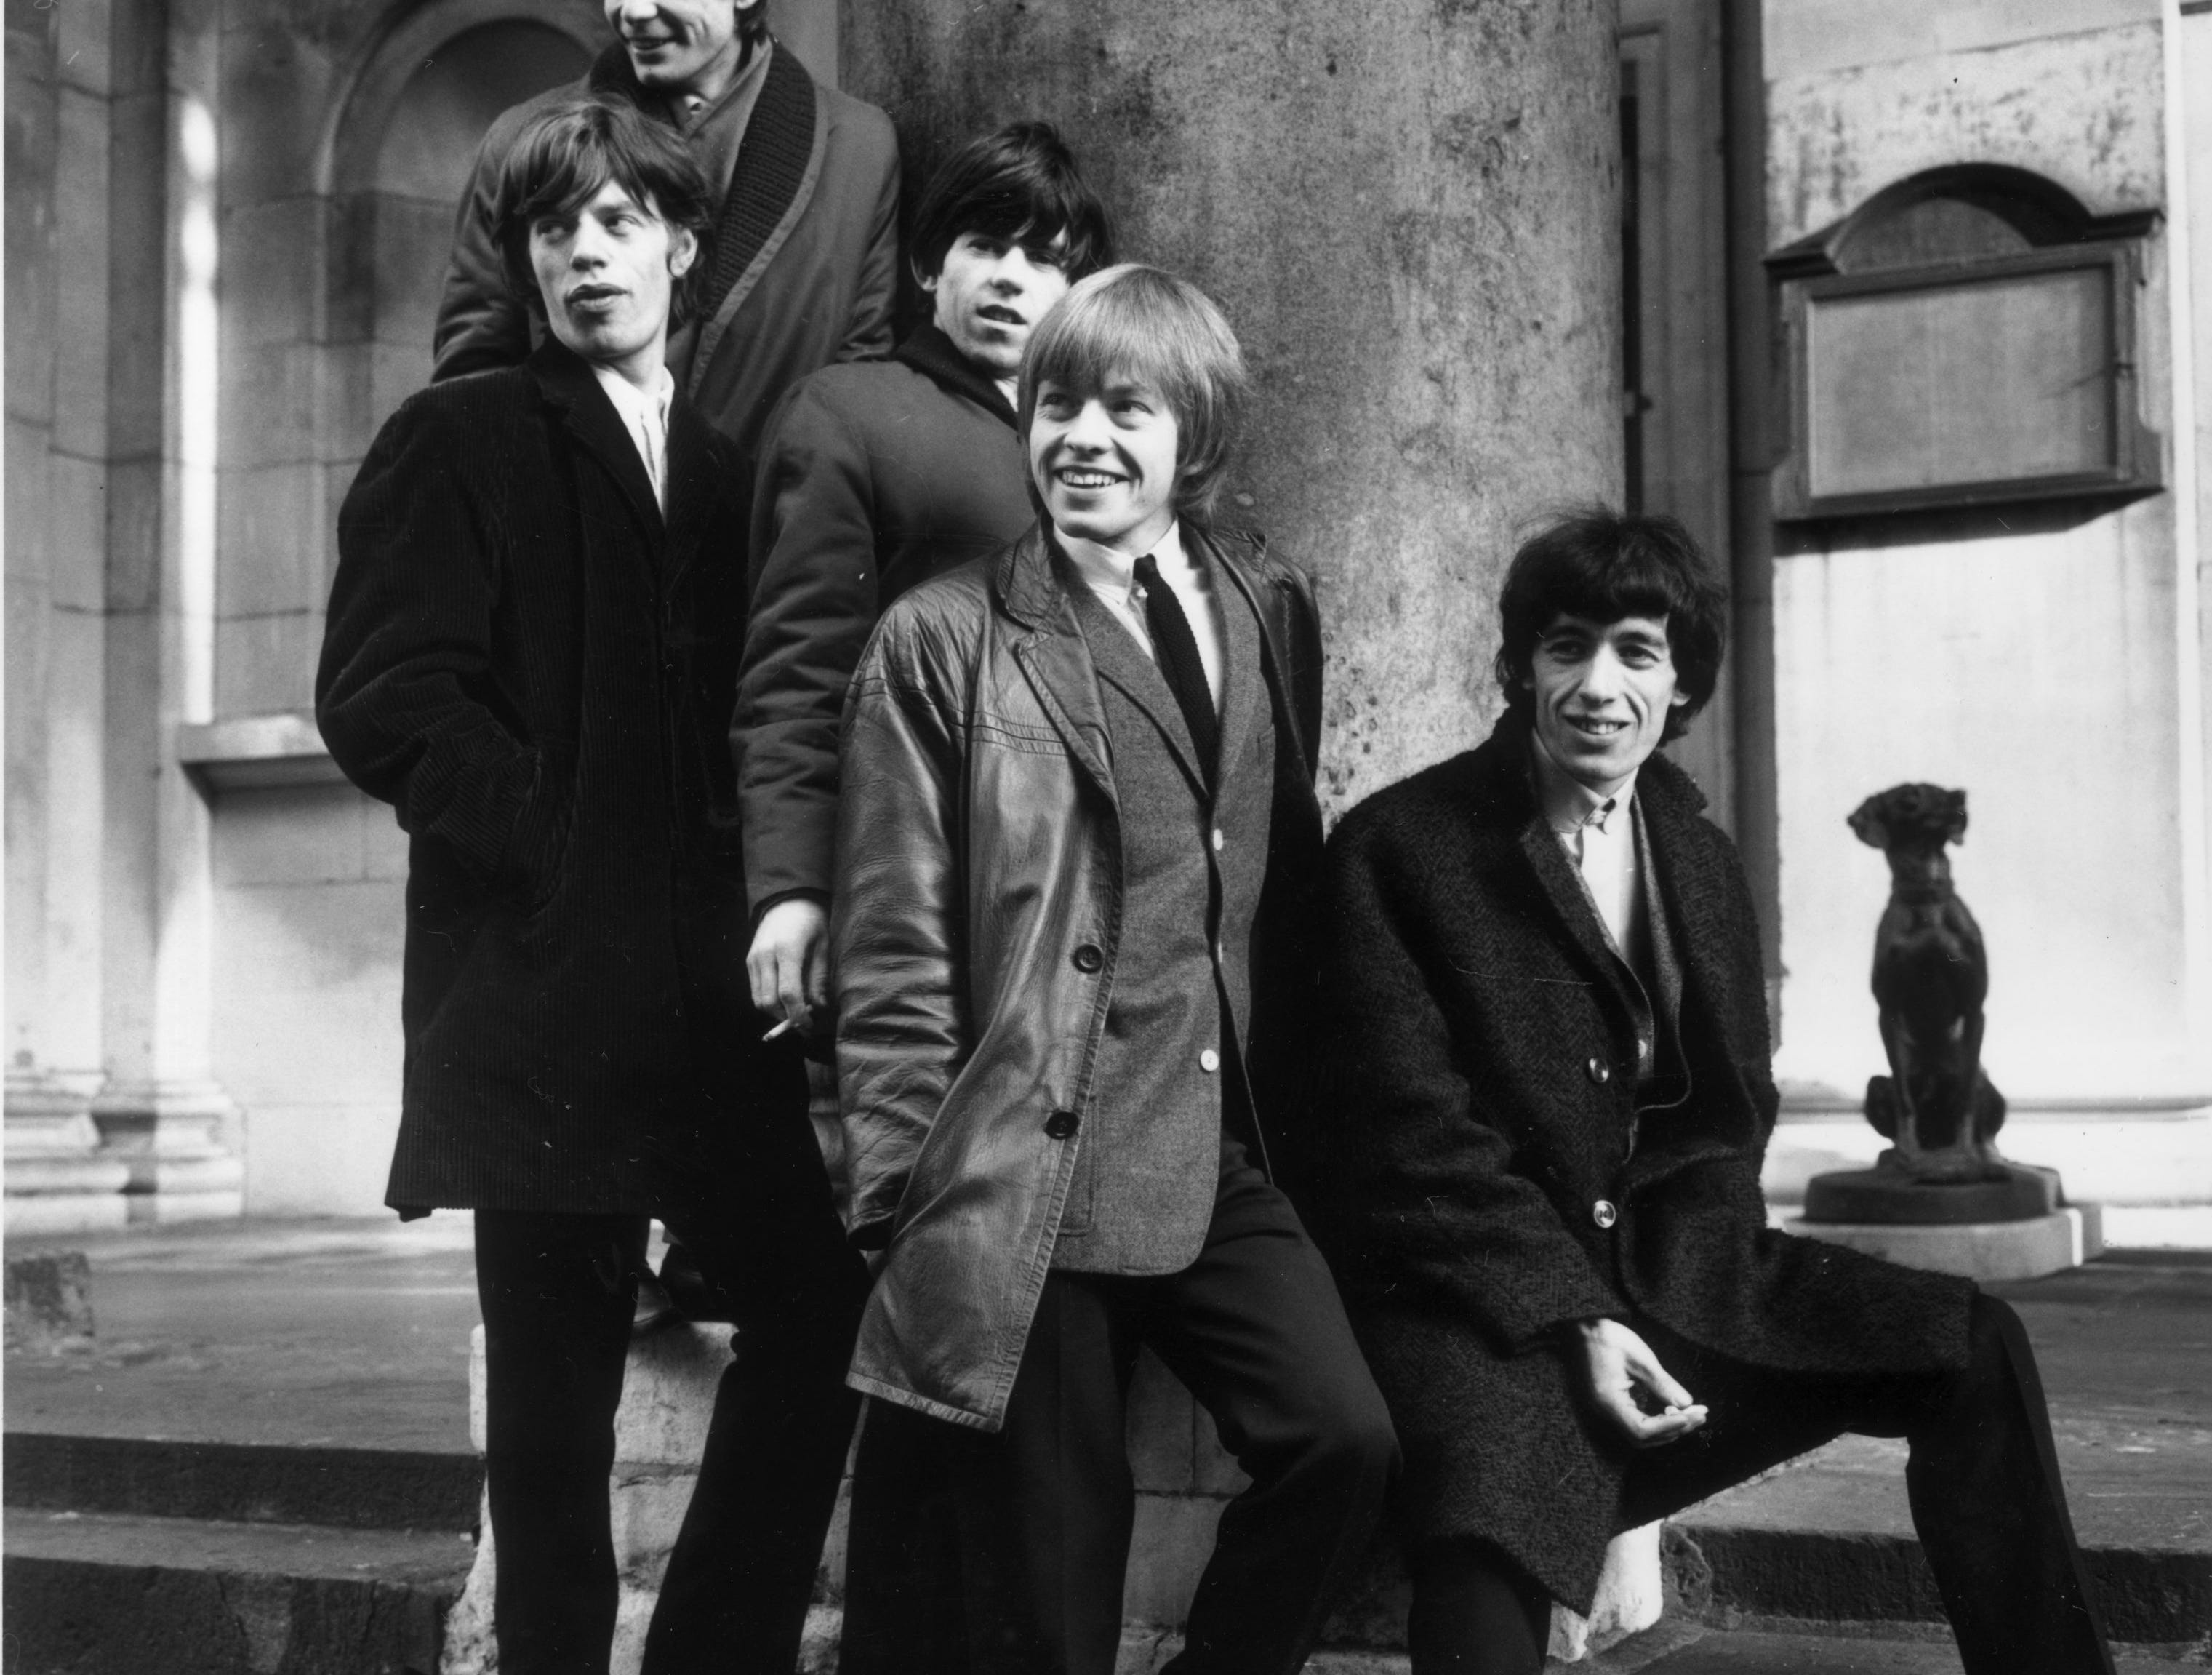 ORG XMIT: 138527053 (FILE PHOTO) On March 13, 2012 Carnegie Hall will play host to a tribute concert, celebrating the music of the Rolling Stones, featuring 21 acts, including Marianne Faithfull, Art Garfunkel and Rickie Lee Jones.  17th January 1964:  British rock group the Rolling Stones, (from left) Charlie Watts, Mick Jagger, Keith Richards, Brian Jones and Bill Wyman, outside St George's Church, Hanover Square, London.  (Photo by Terry Disney/Express/Getty Images) ORIG FILE ID: 3096359